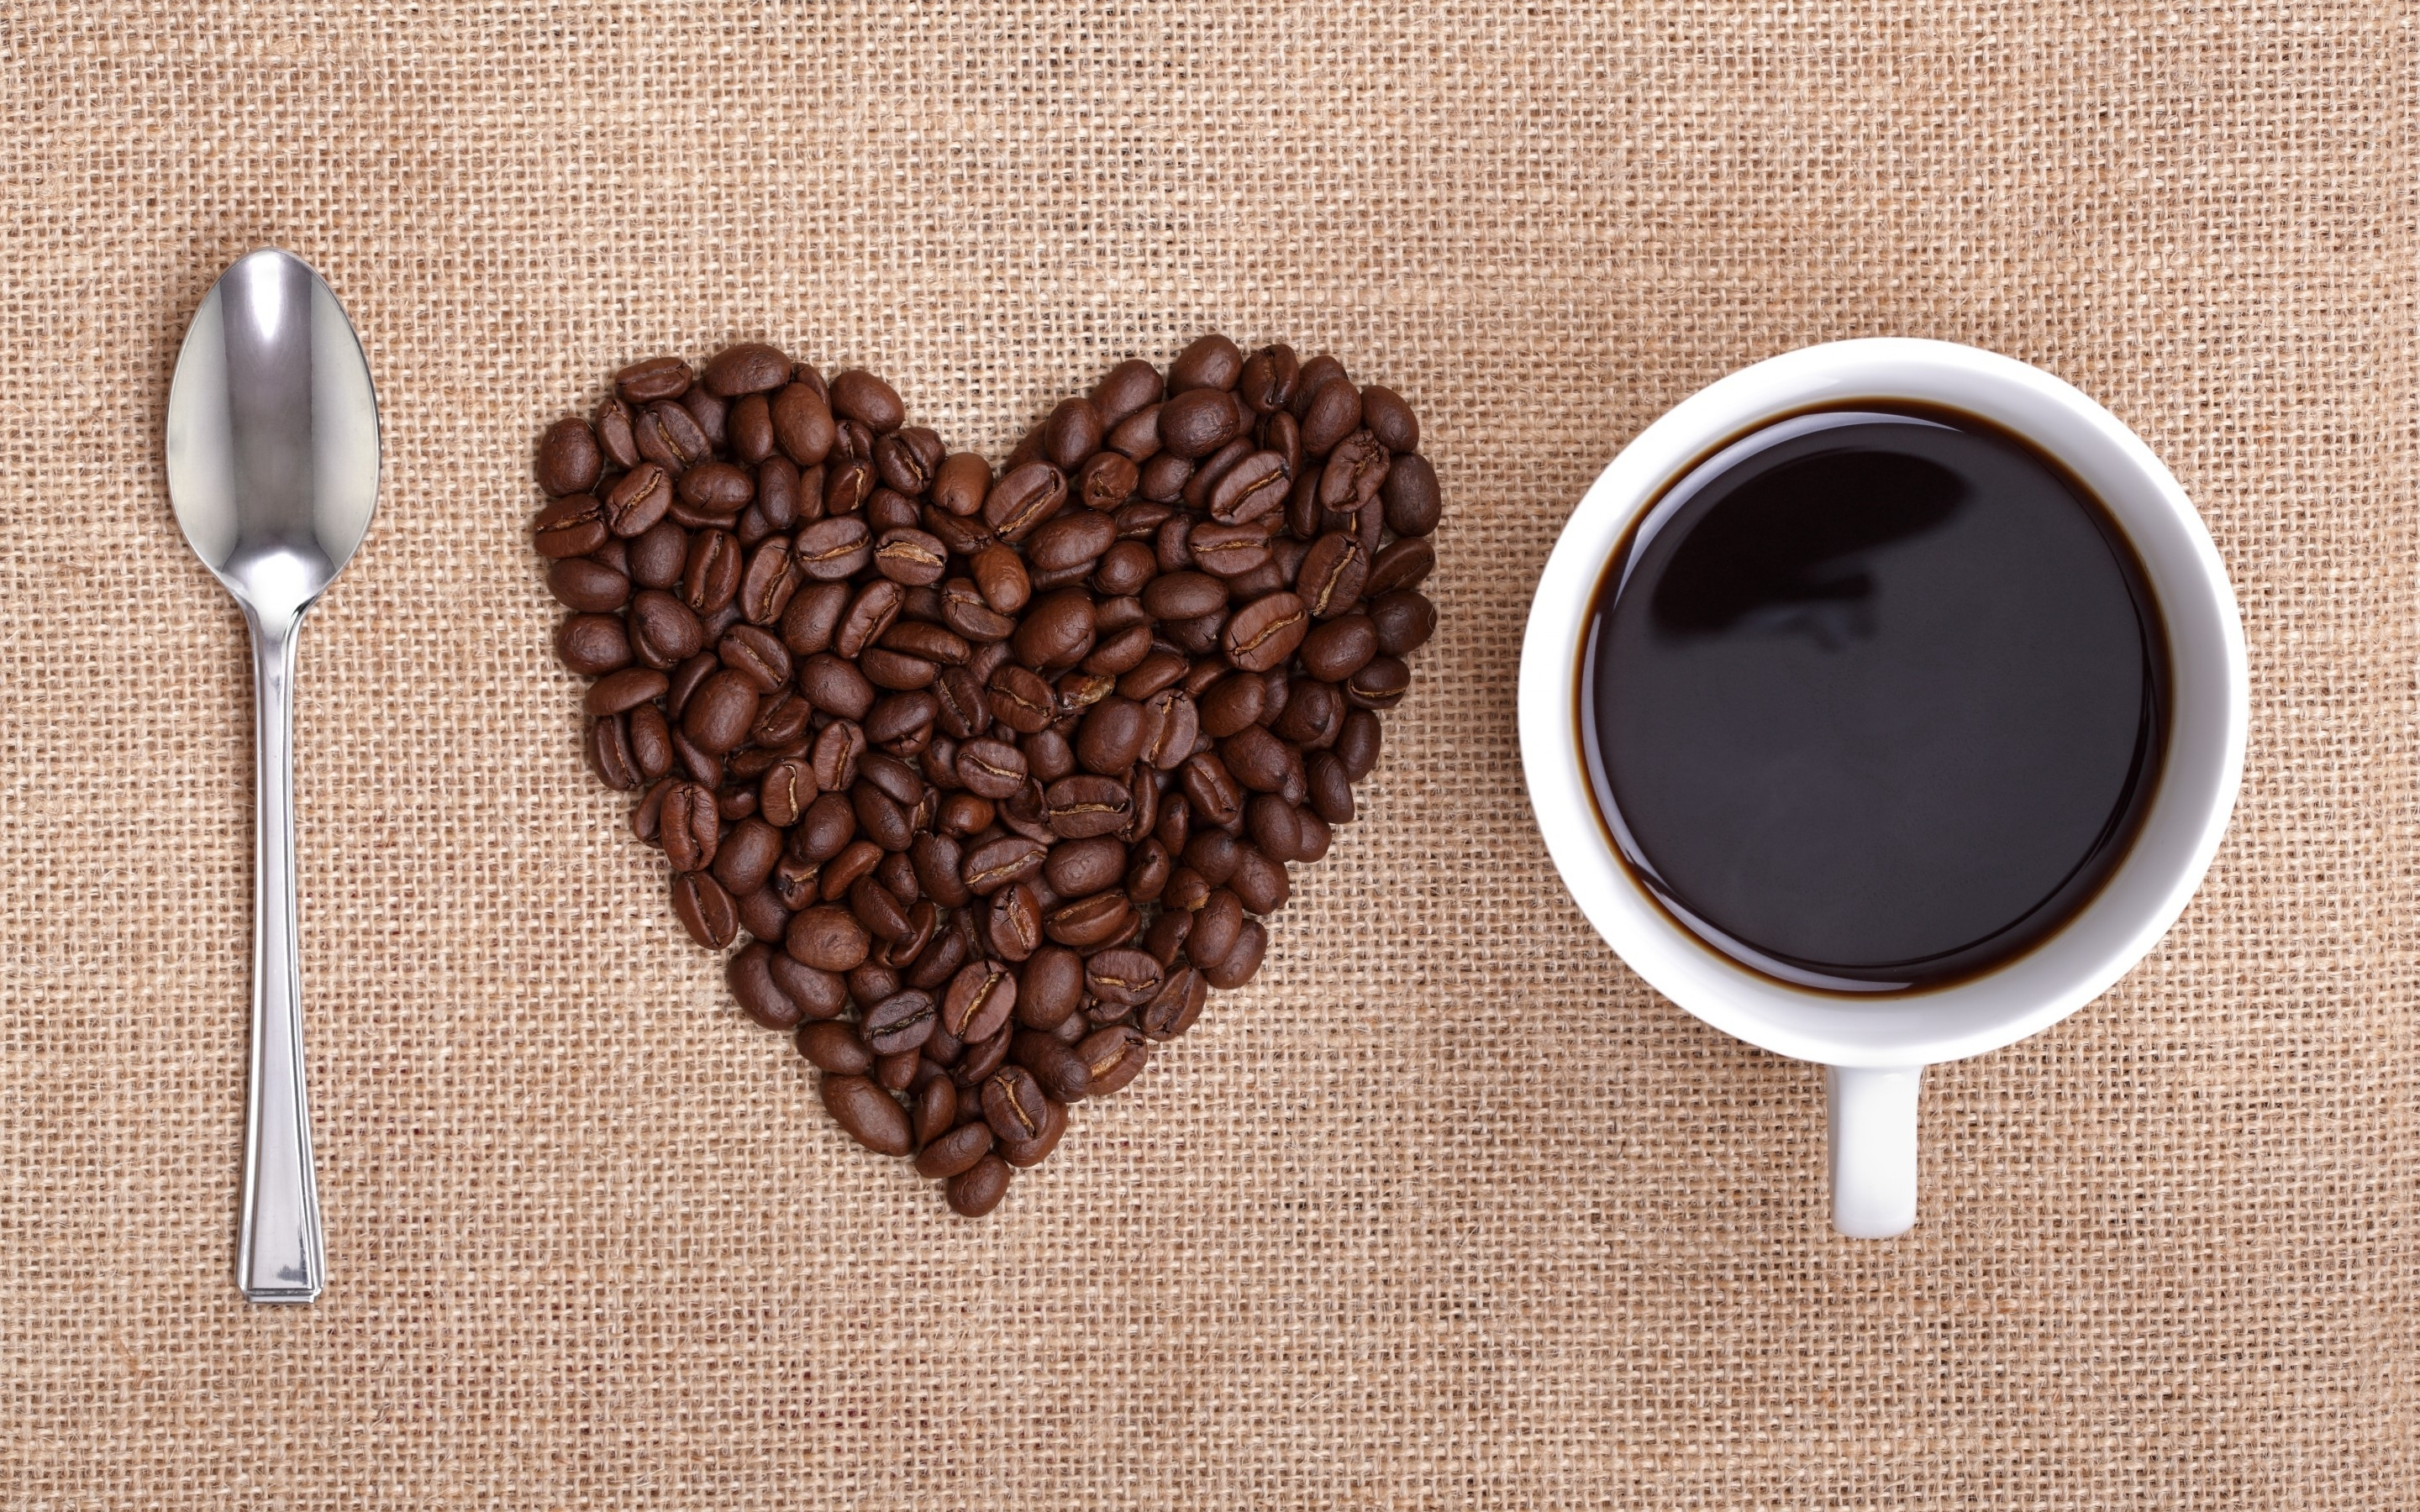 I Love Coffee Hd Artist 4k Wallpapers Images Backgrounds